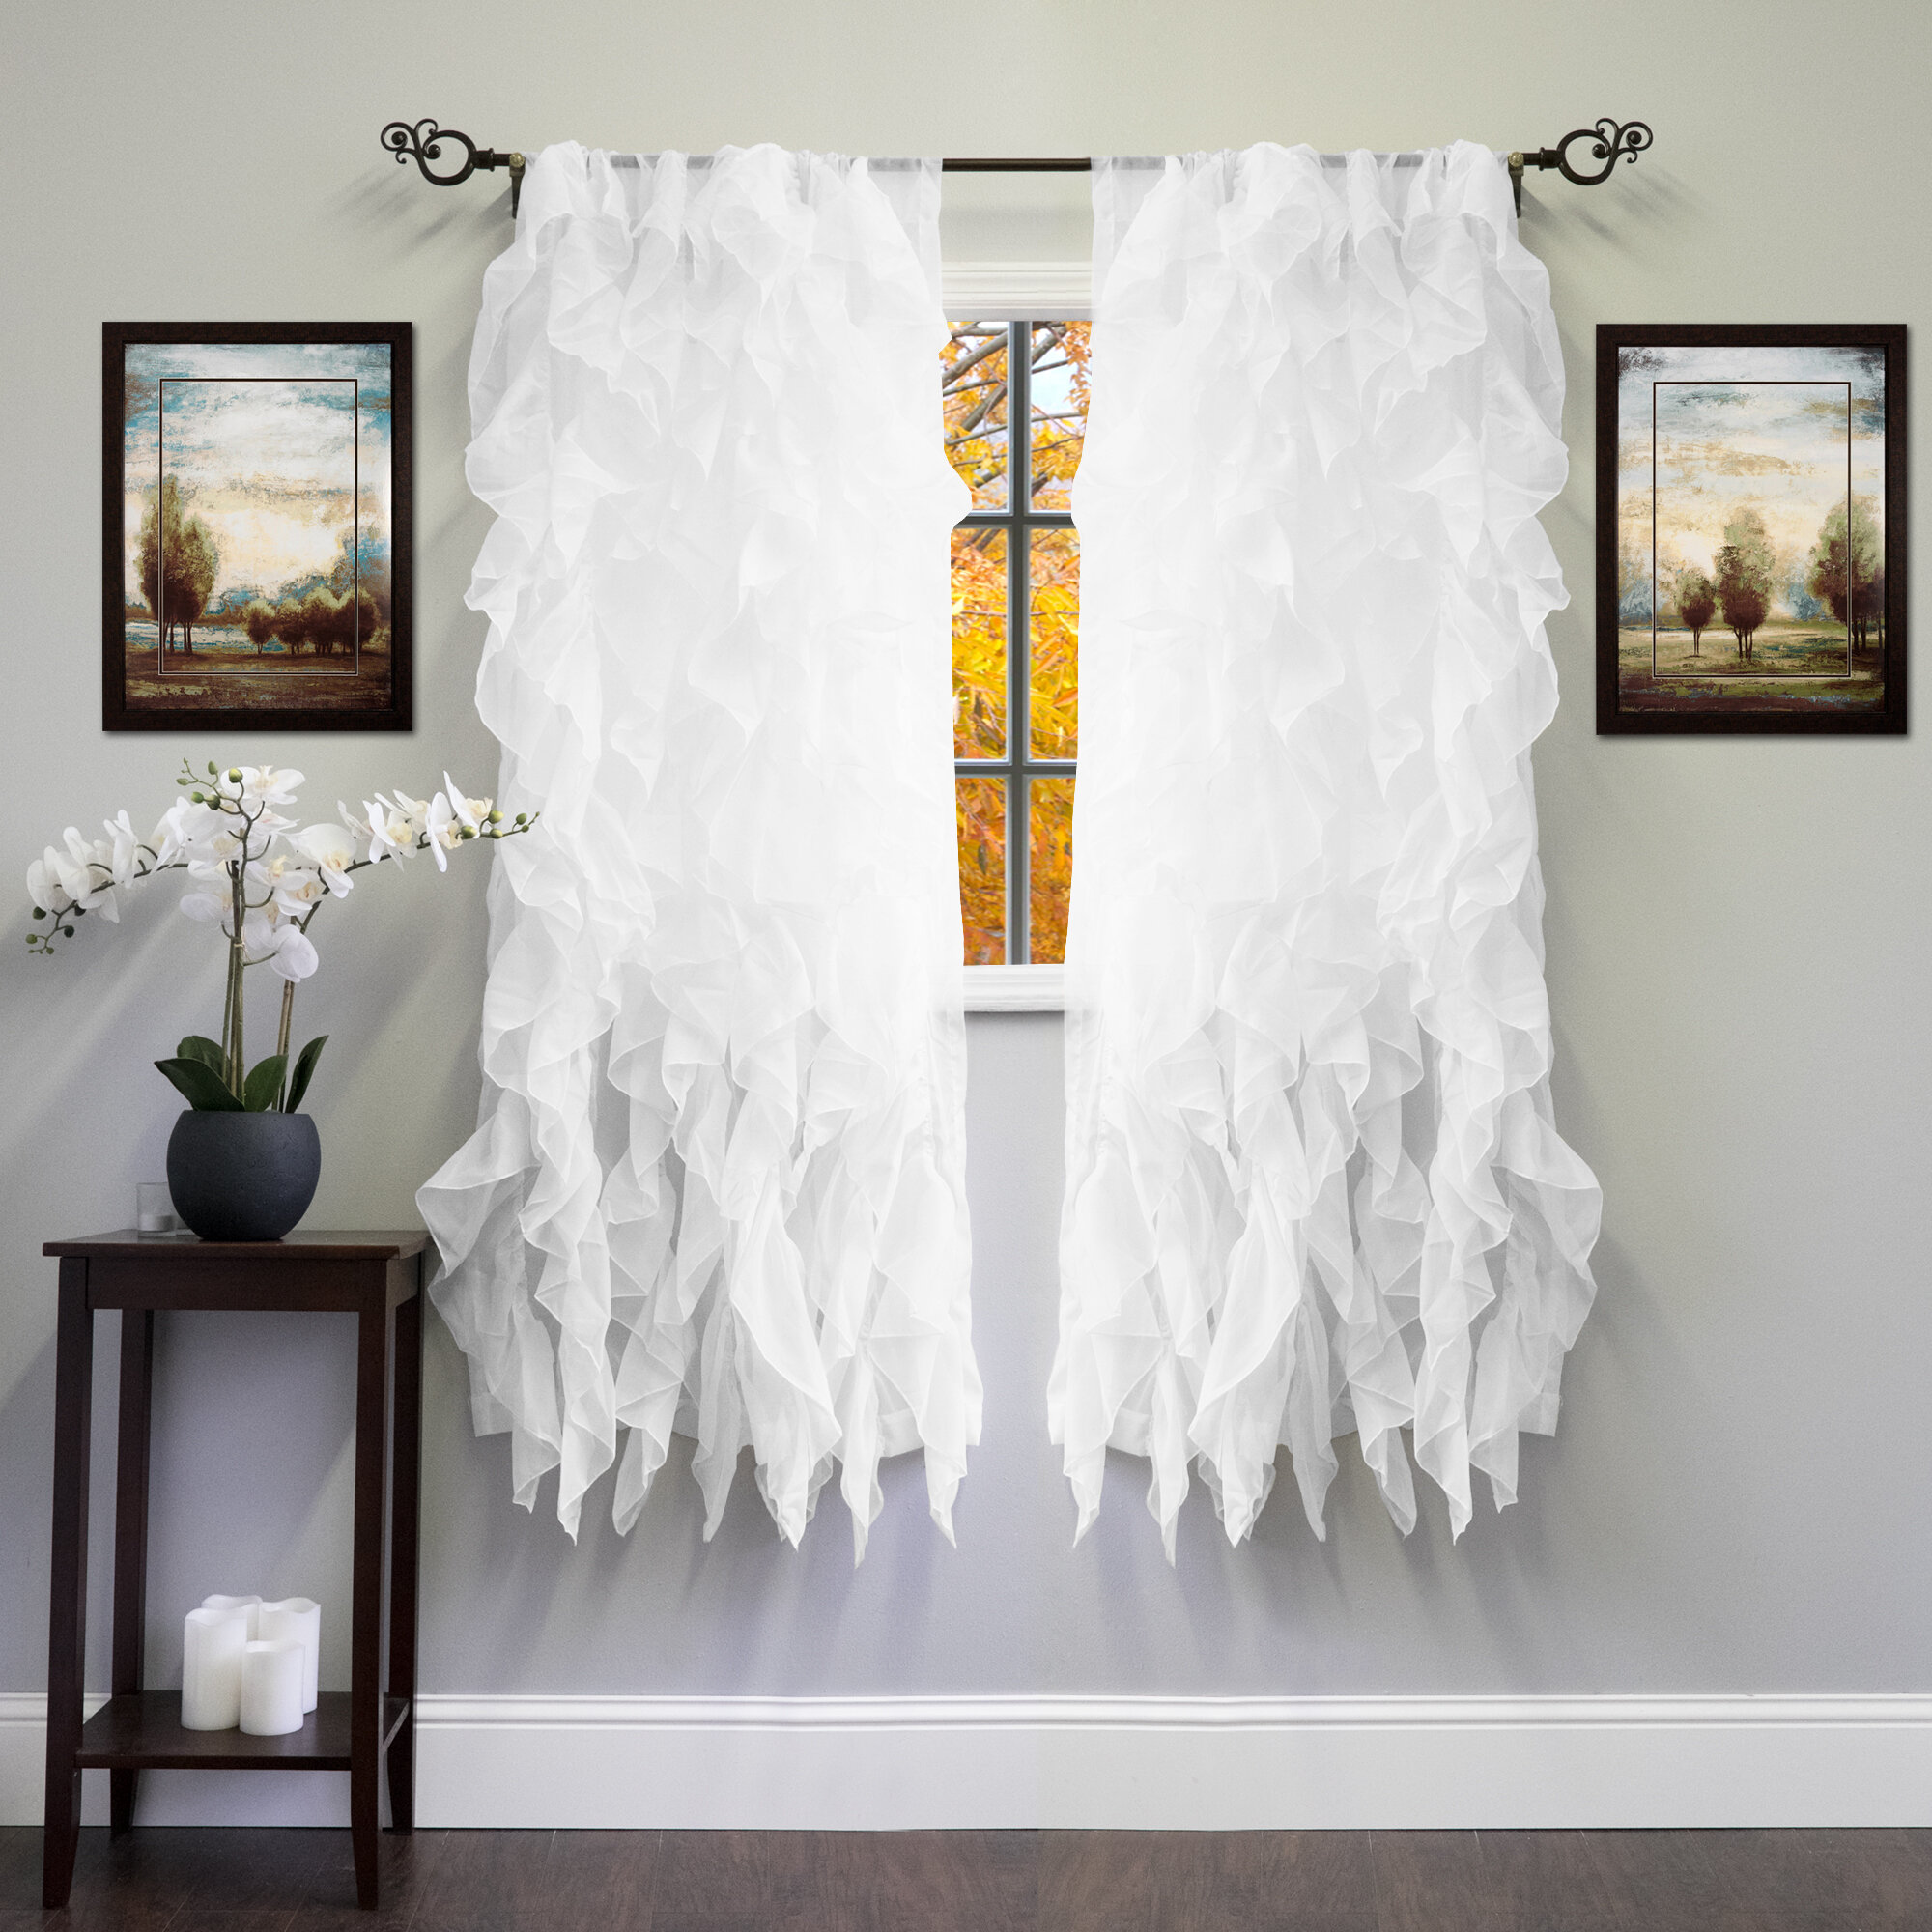 of luxury sheer gratograt shower smlf ruffles image fabric zoom photos curtain off white